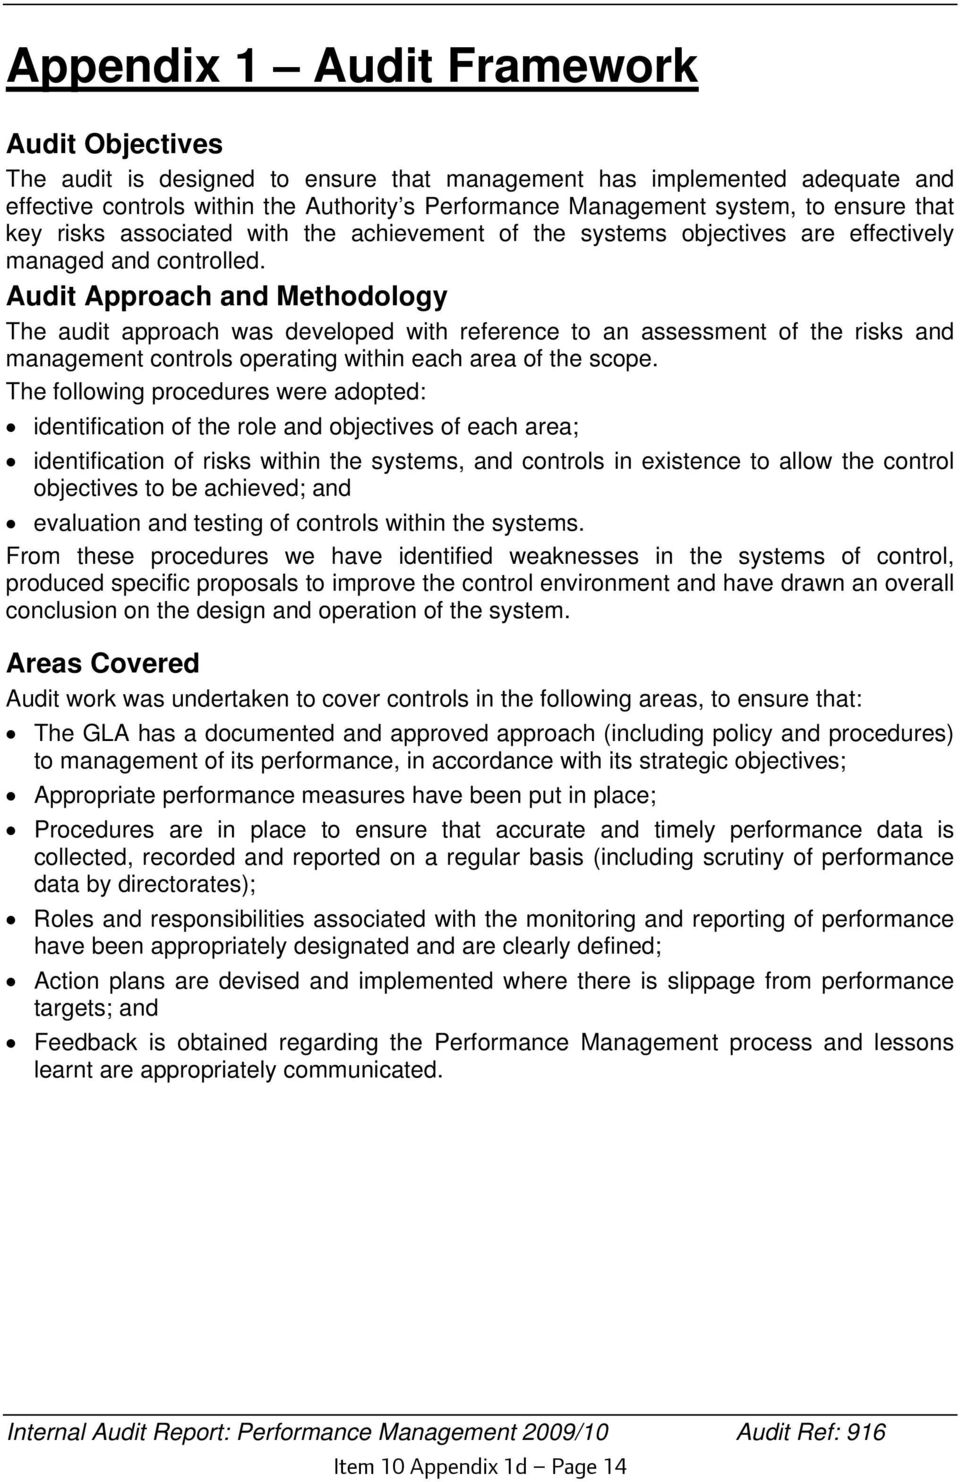 Audit Approach and Methodology The audit approach was developed with reference to an assessment of the risks and management controls operating within each area of the scope.